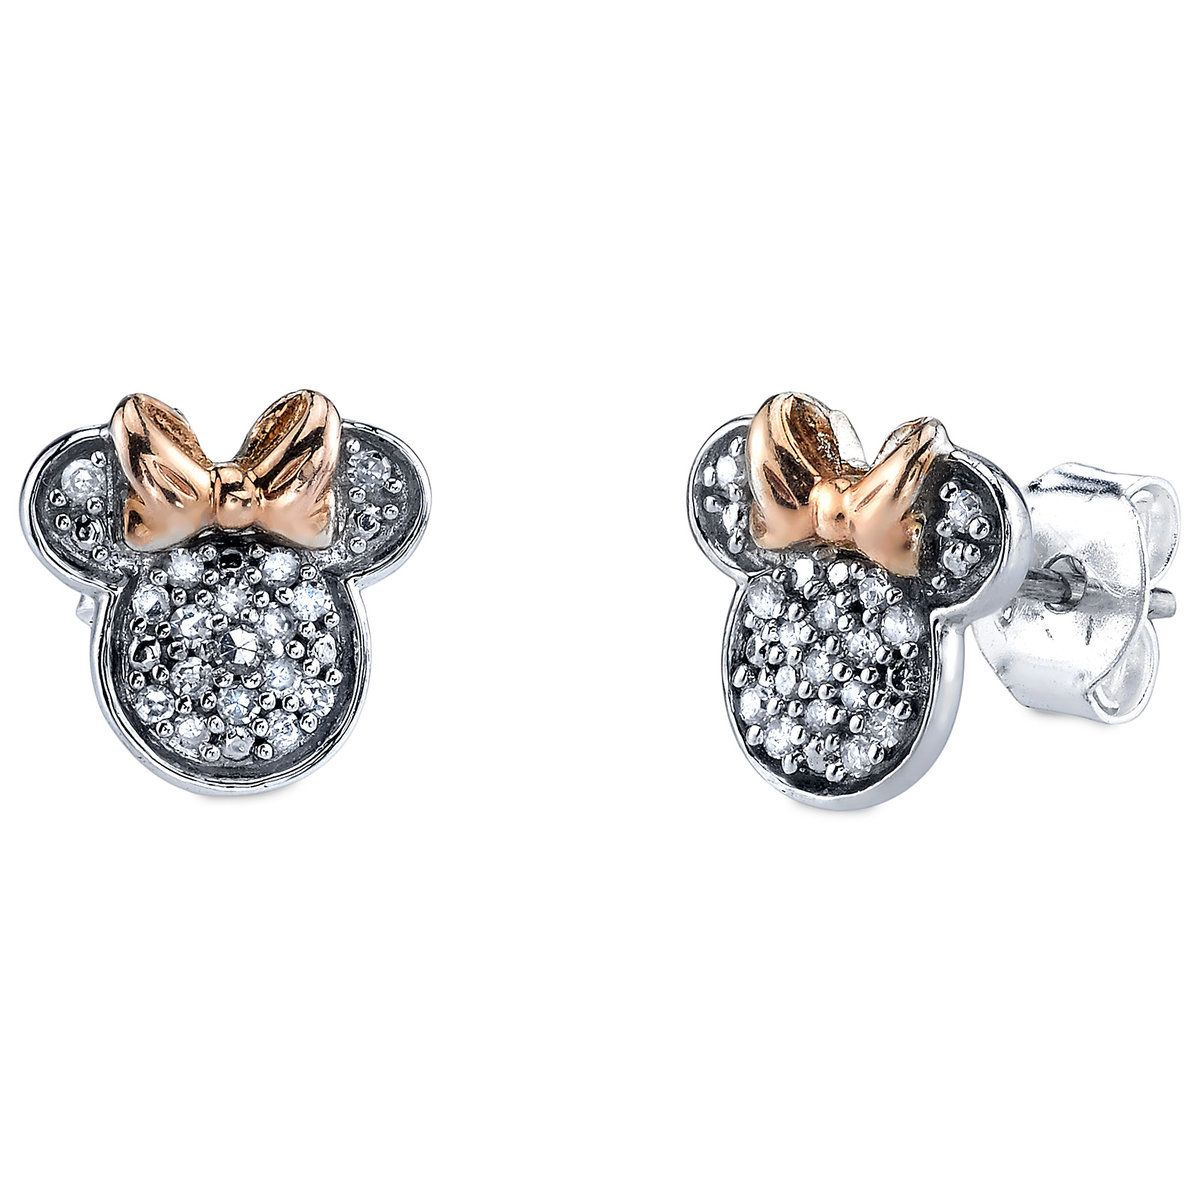 2dded1f8b Minnie Mouse Icon Diamond Earrings | Buy Me, Please | Jewelry ...